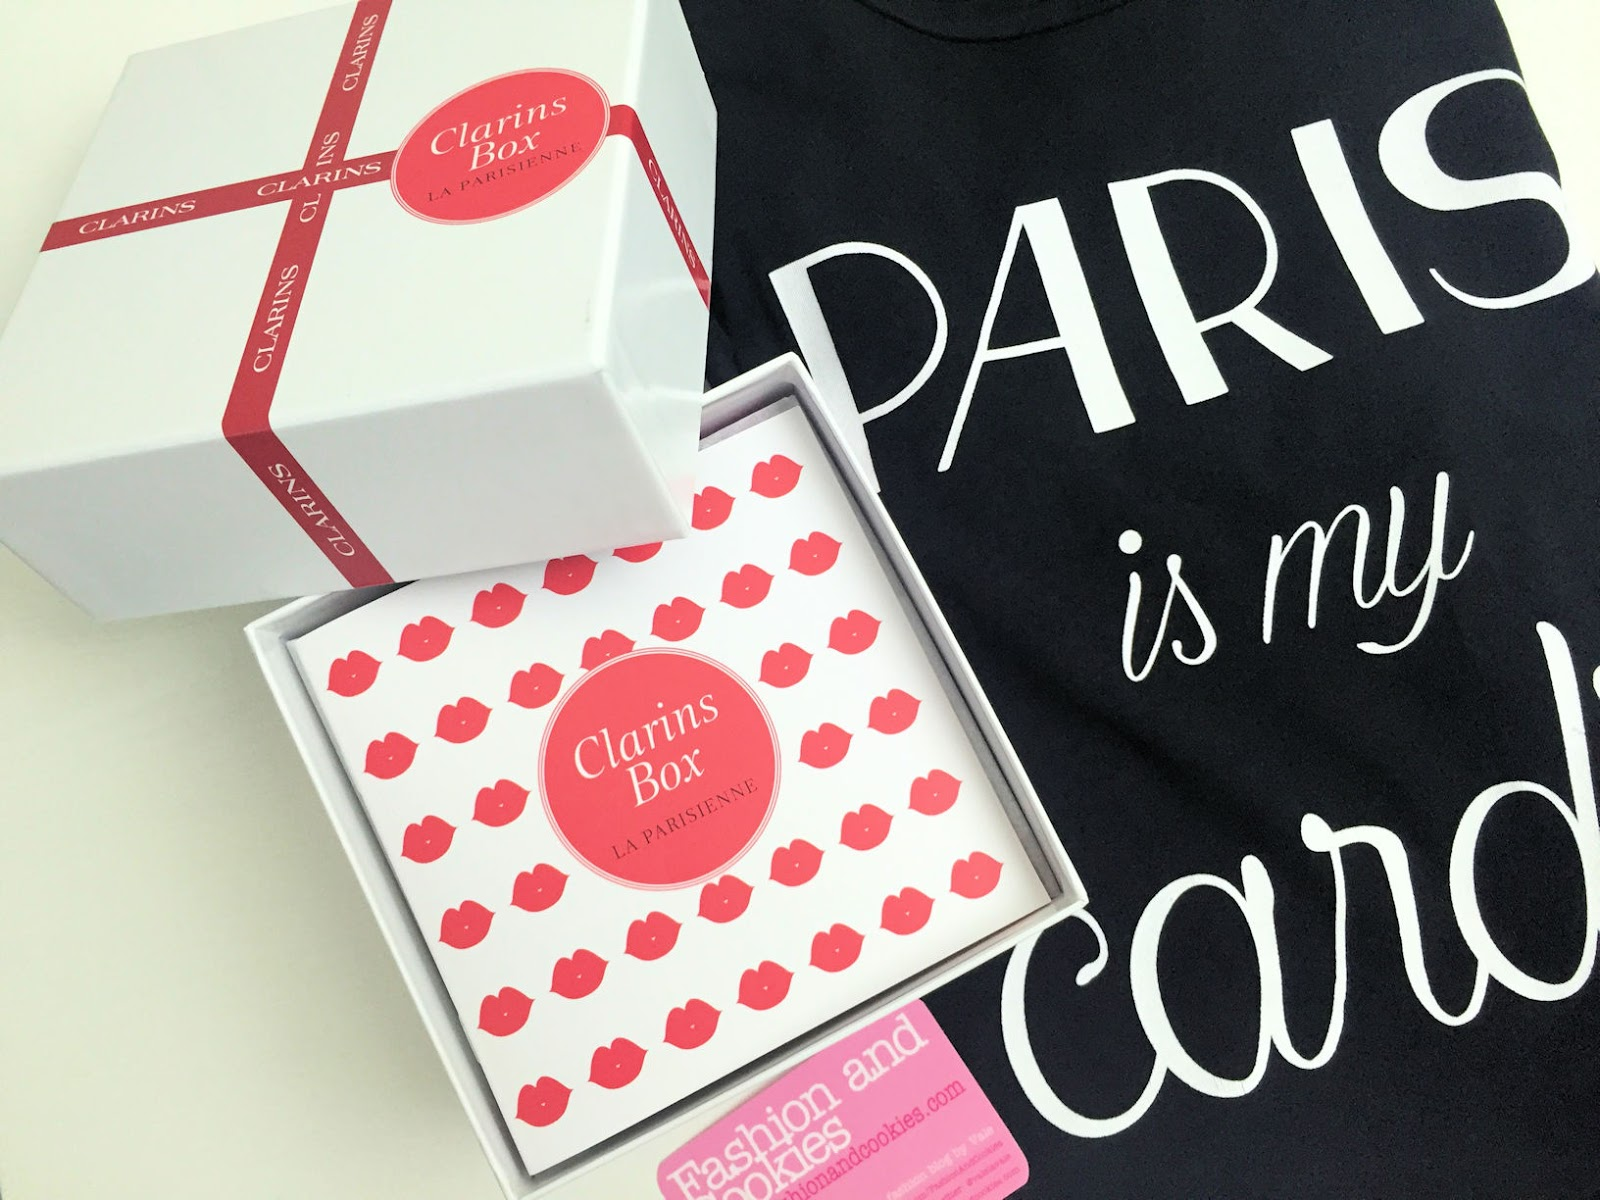 Clarins box La Parisienne on Fashion and Cookies beauty blog, beauty blogger